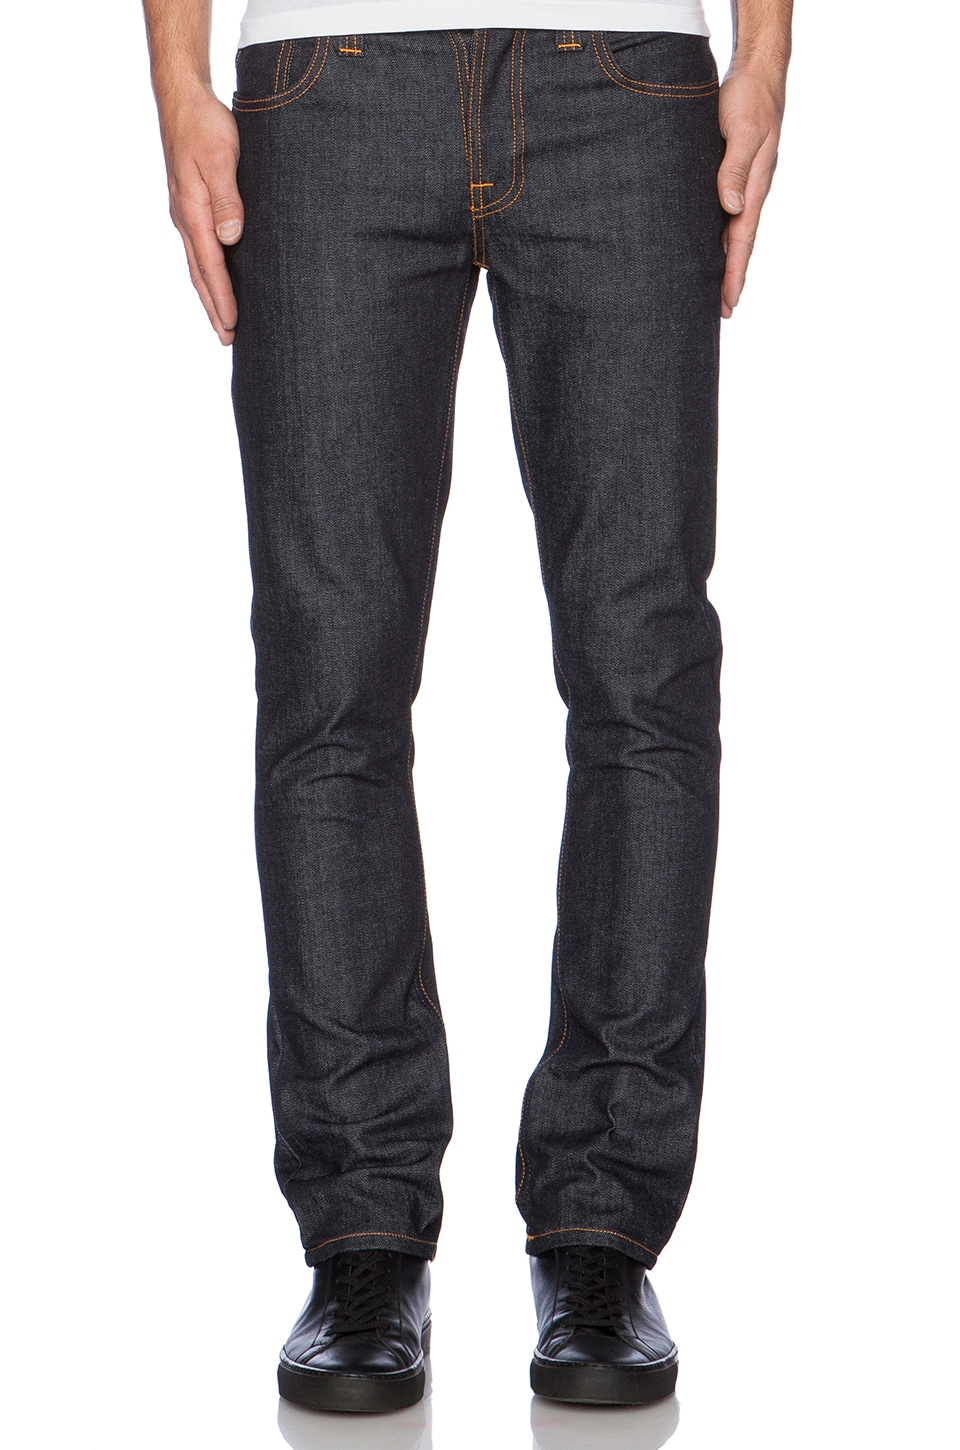 Nudie Jeans Grim Tim in Org. Dry Open Navy